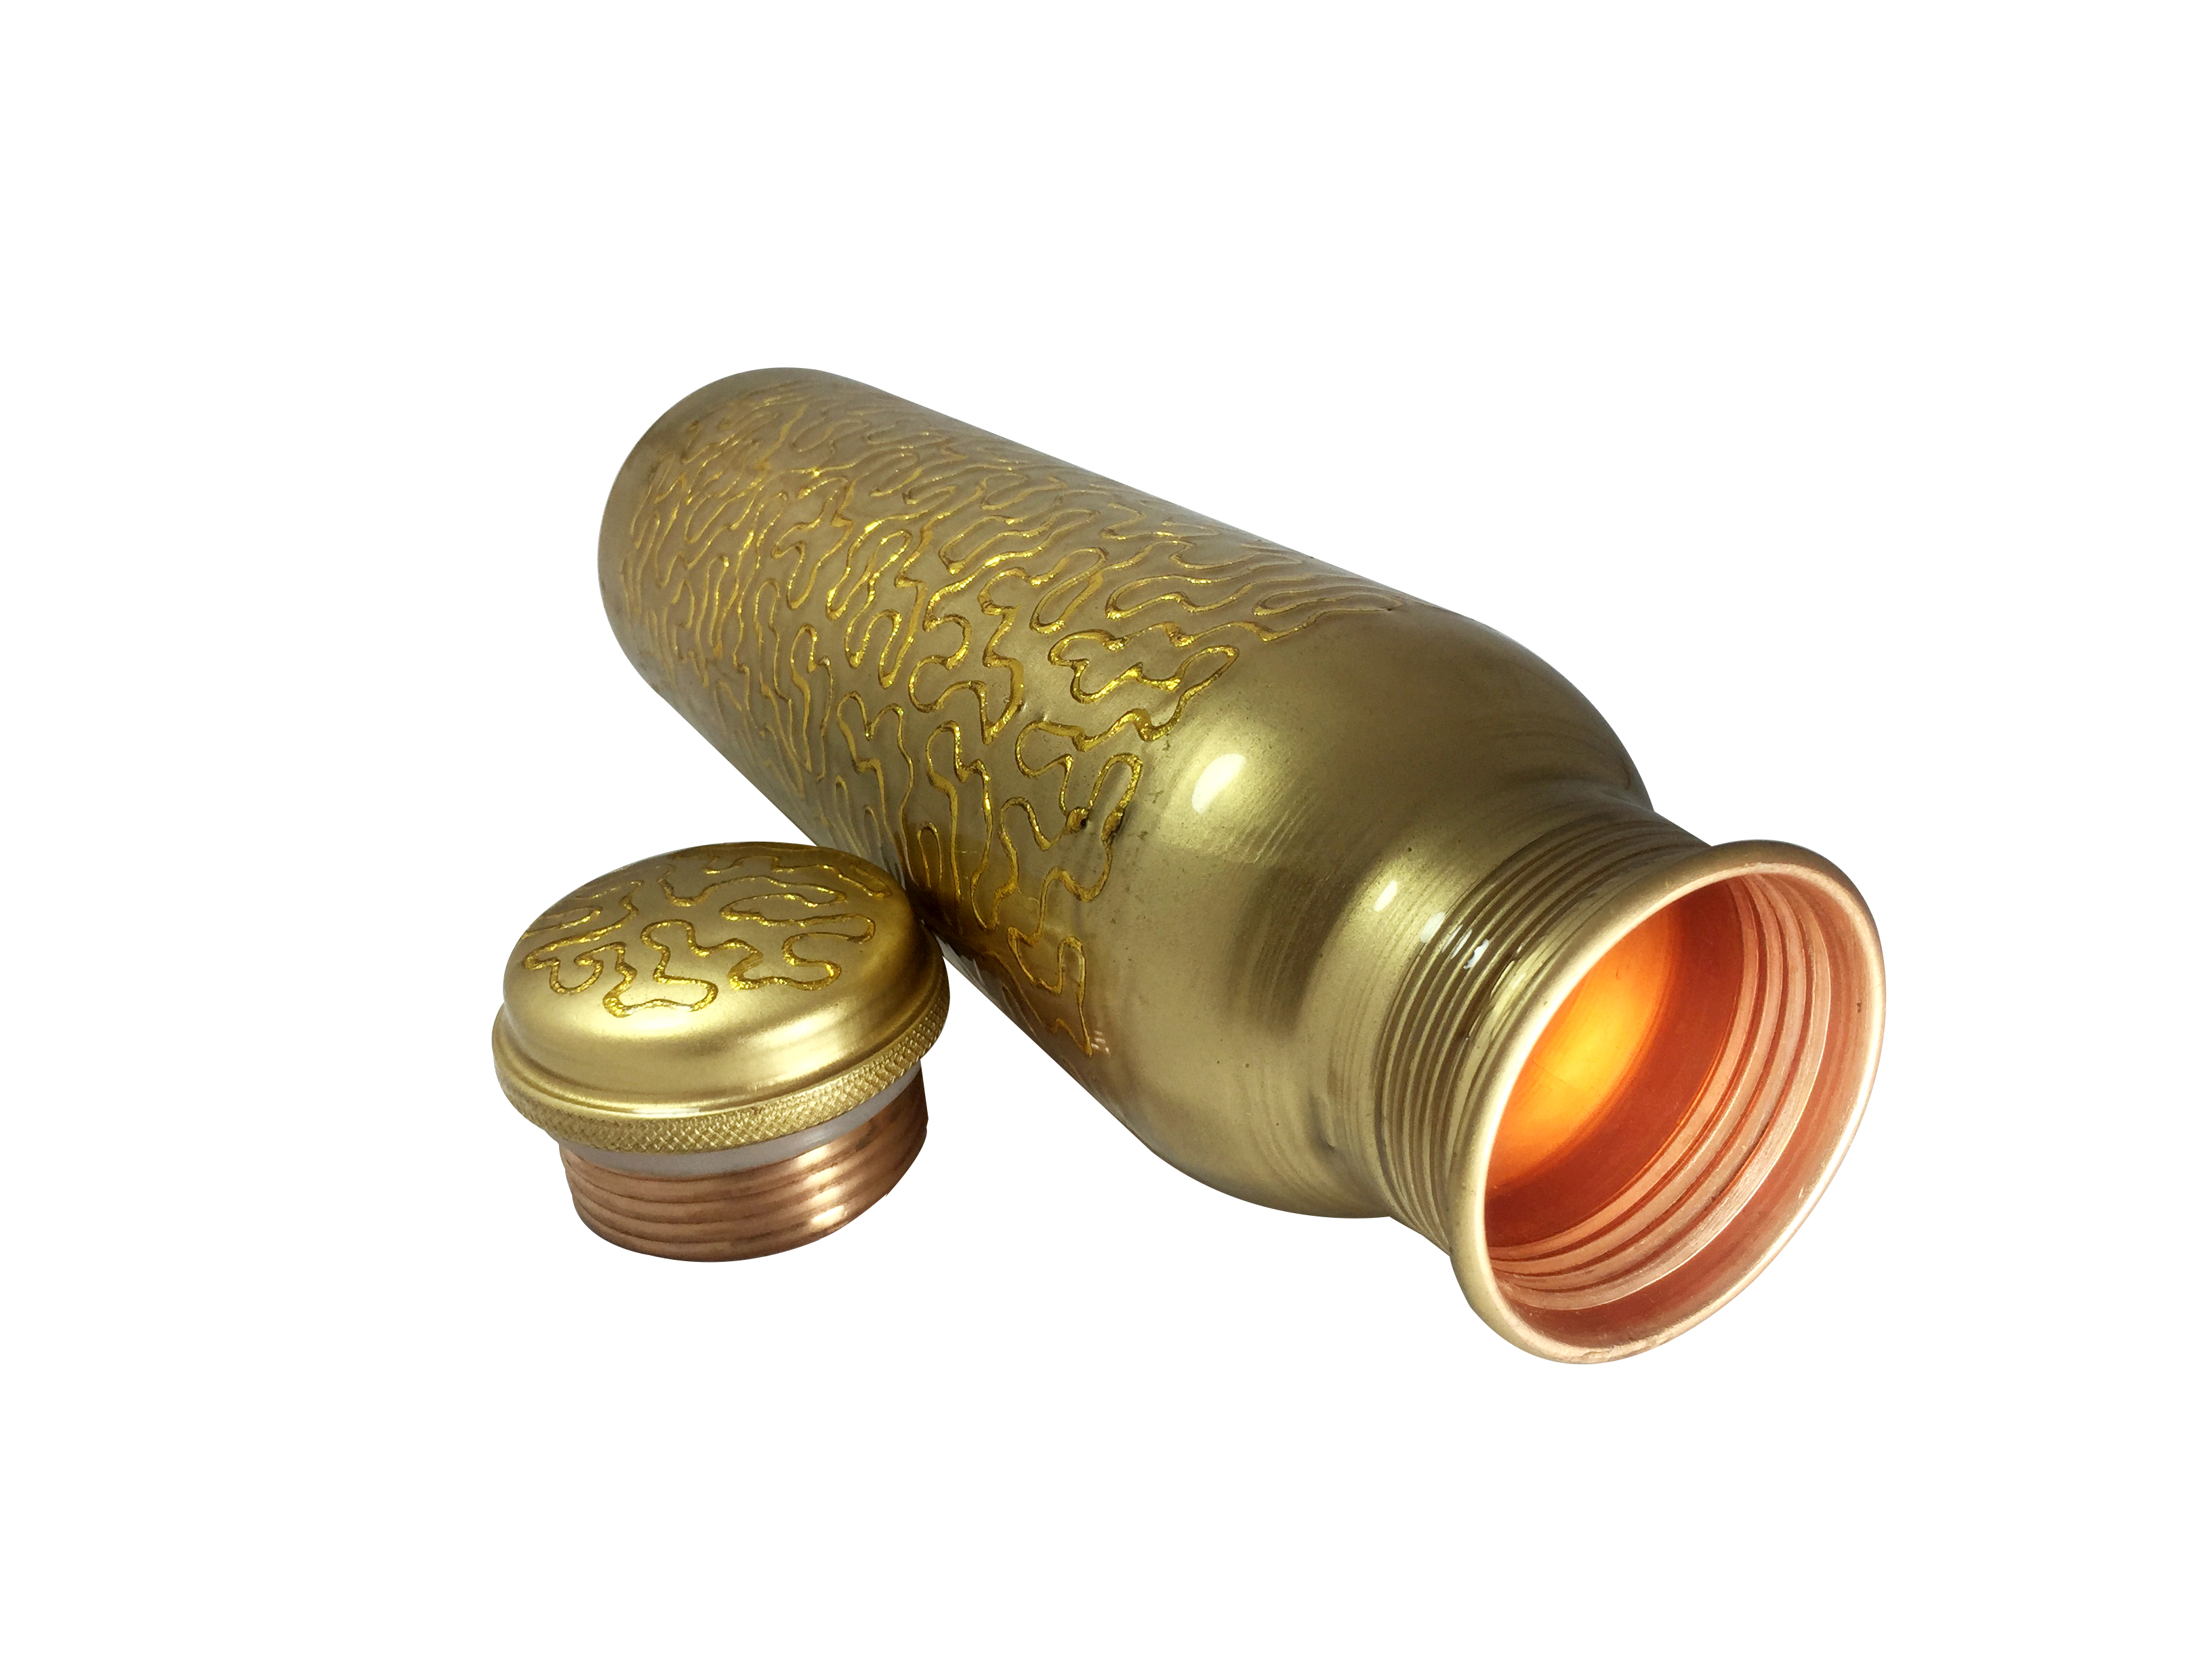 1 Sipper 750Ml and 1 Copper Bottle 750Ml - sports sipper 750ML Embroided Golden Copper Bottle 750